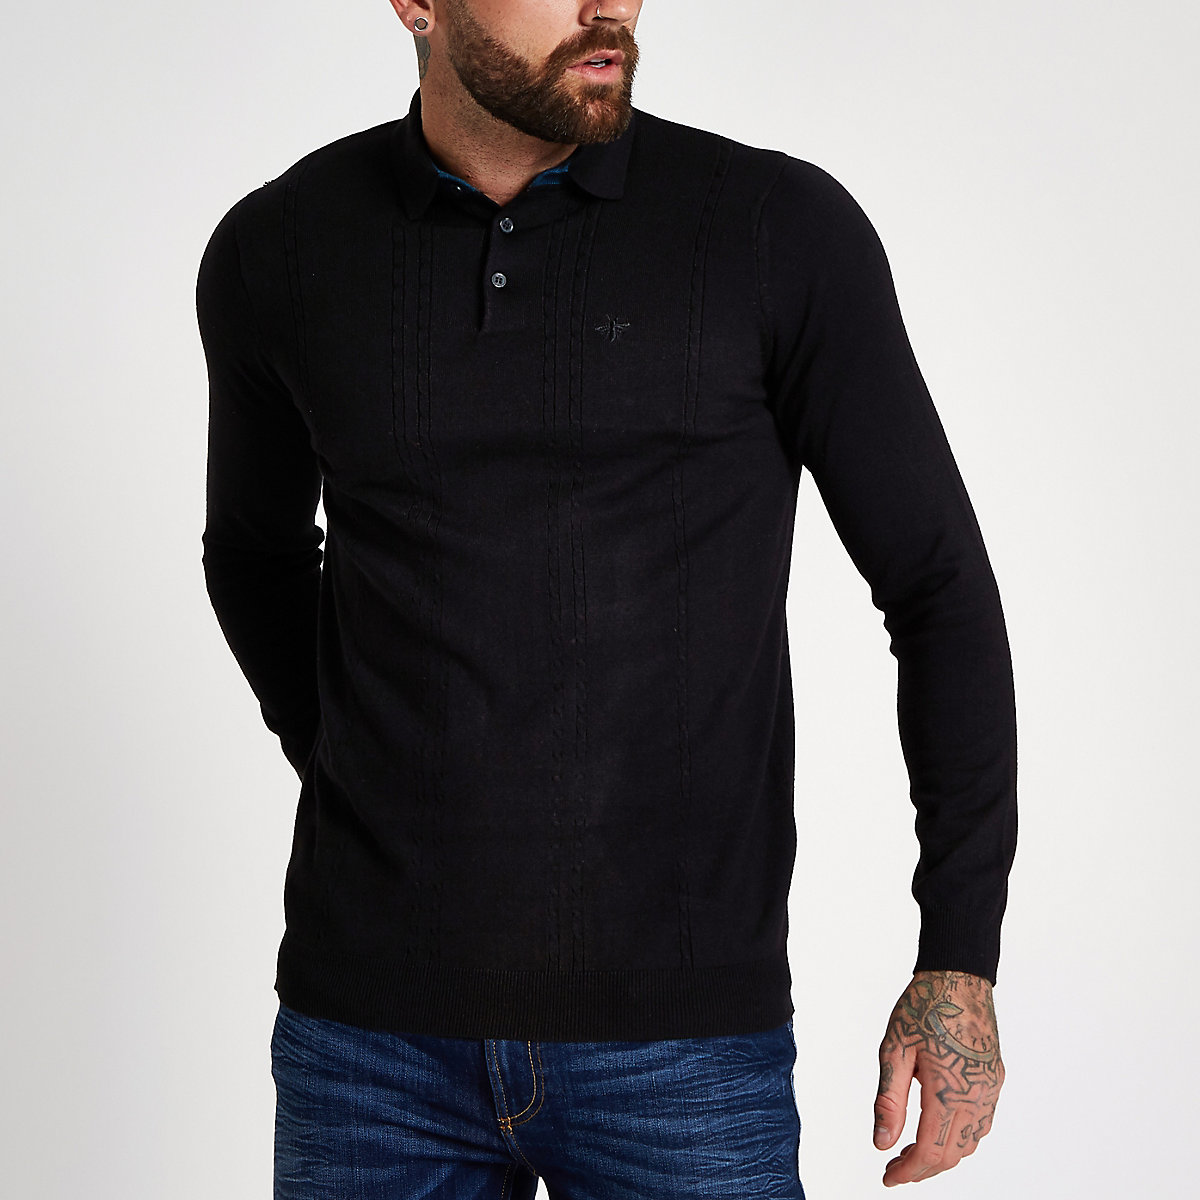 Black slim fit long sleeve polo shirt